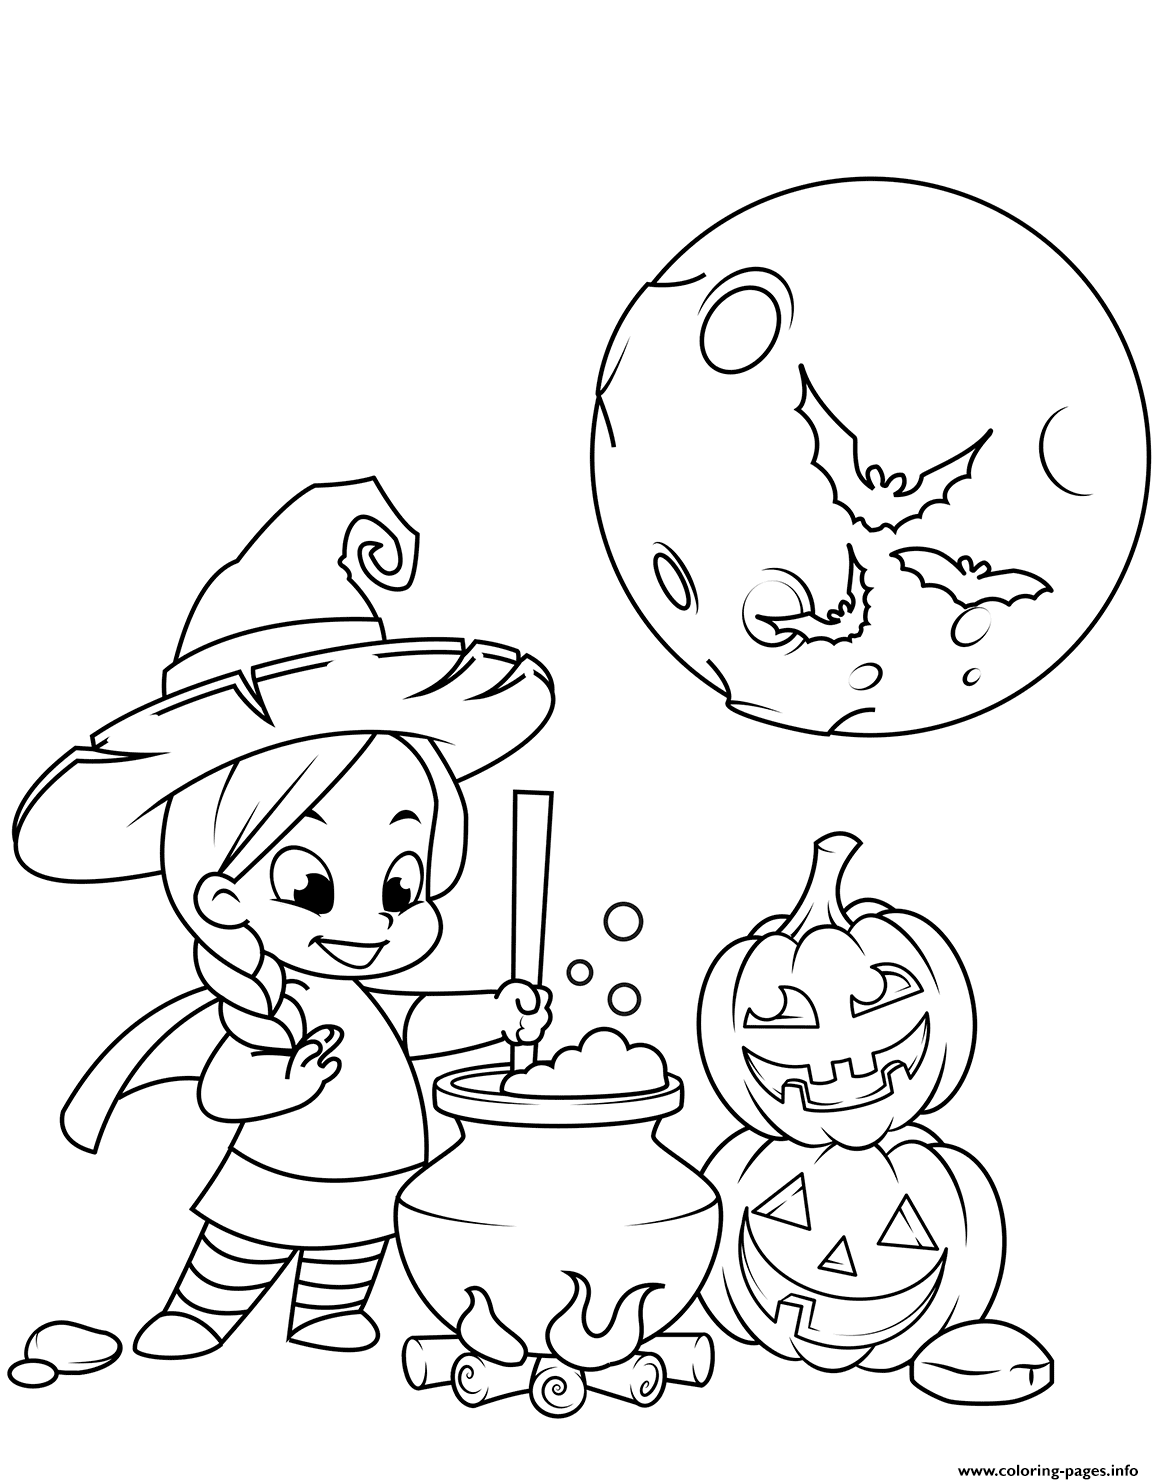 Cute Little Witch Cooking A Potion In A Cauldron Halloween coloring pages